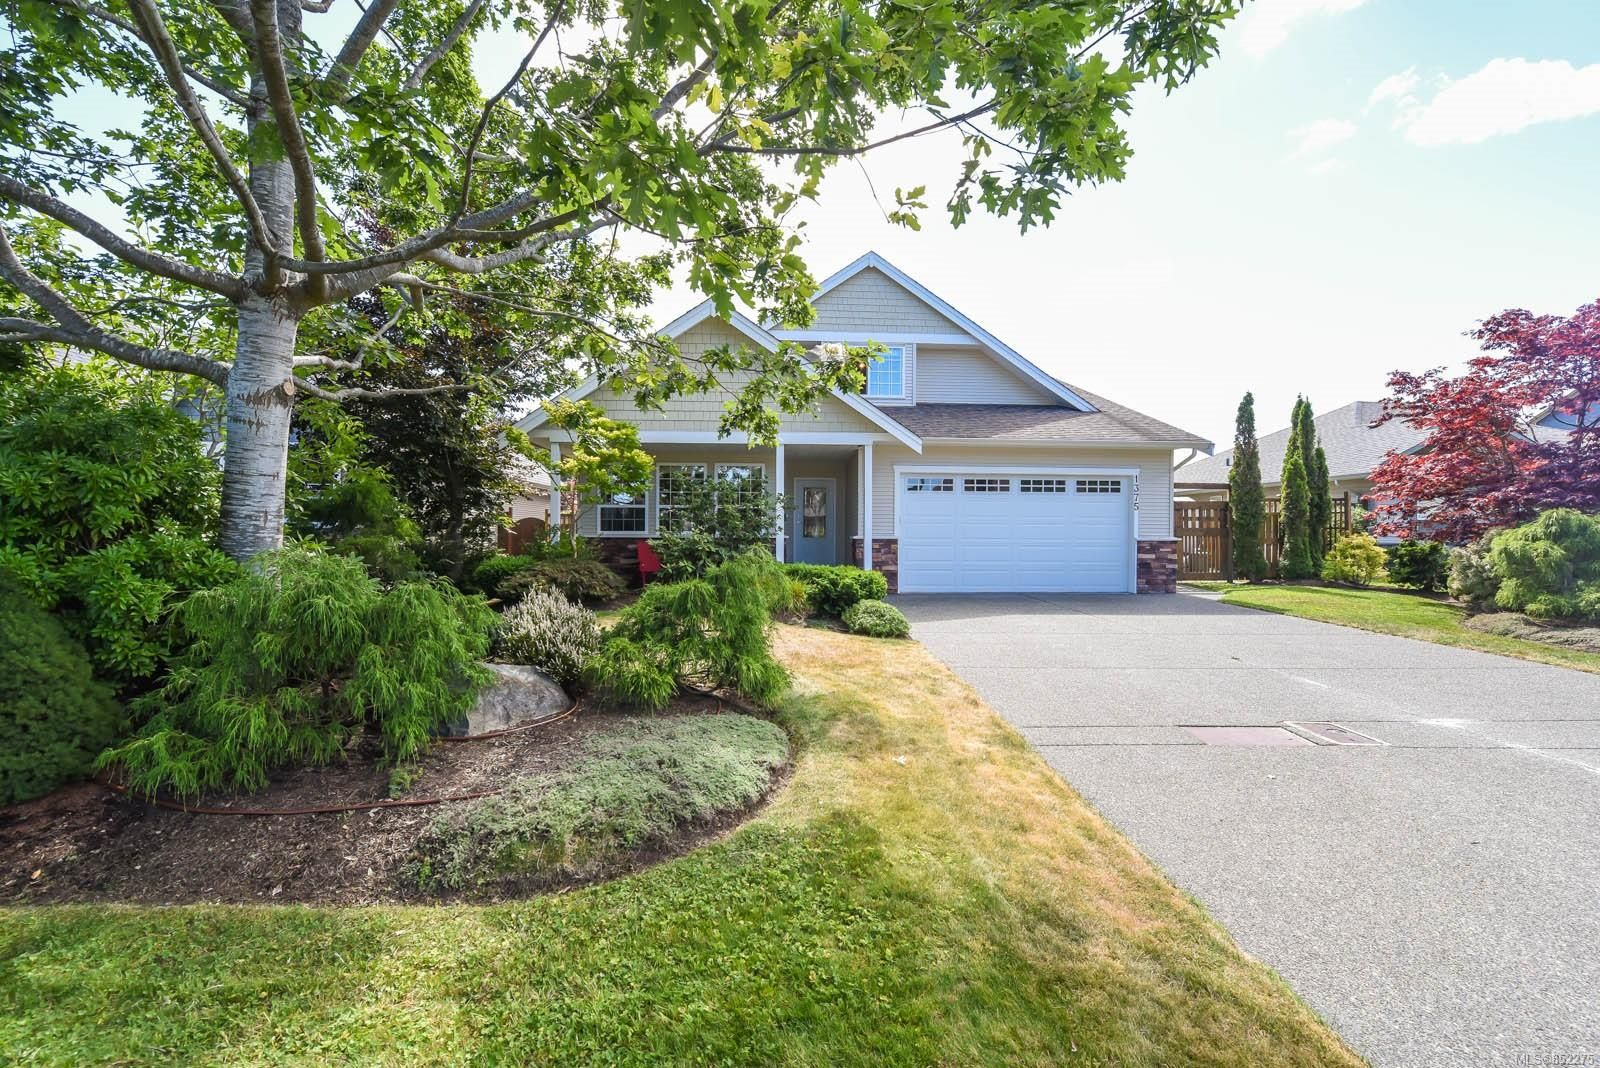 Main Photo: 1375 Zephyr Pl in : CV Comox (Town of) House for sale (Comox Valley)  : MLS®# 852275